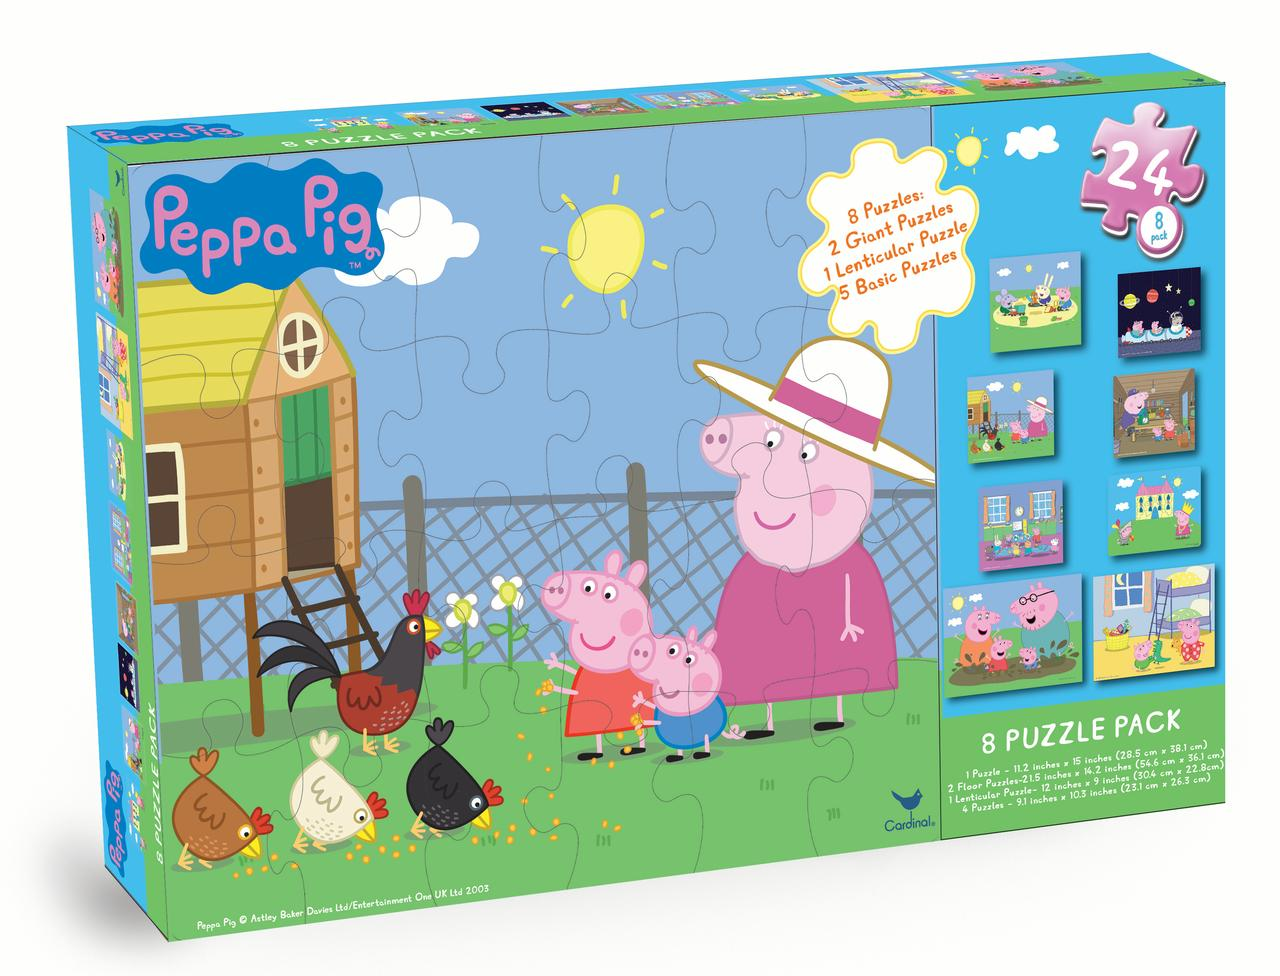 Peppa Pig 8-Pack Puzzle Box by Spin Master Ltd